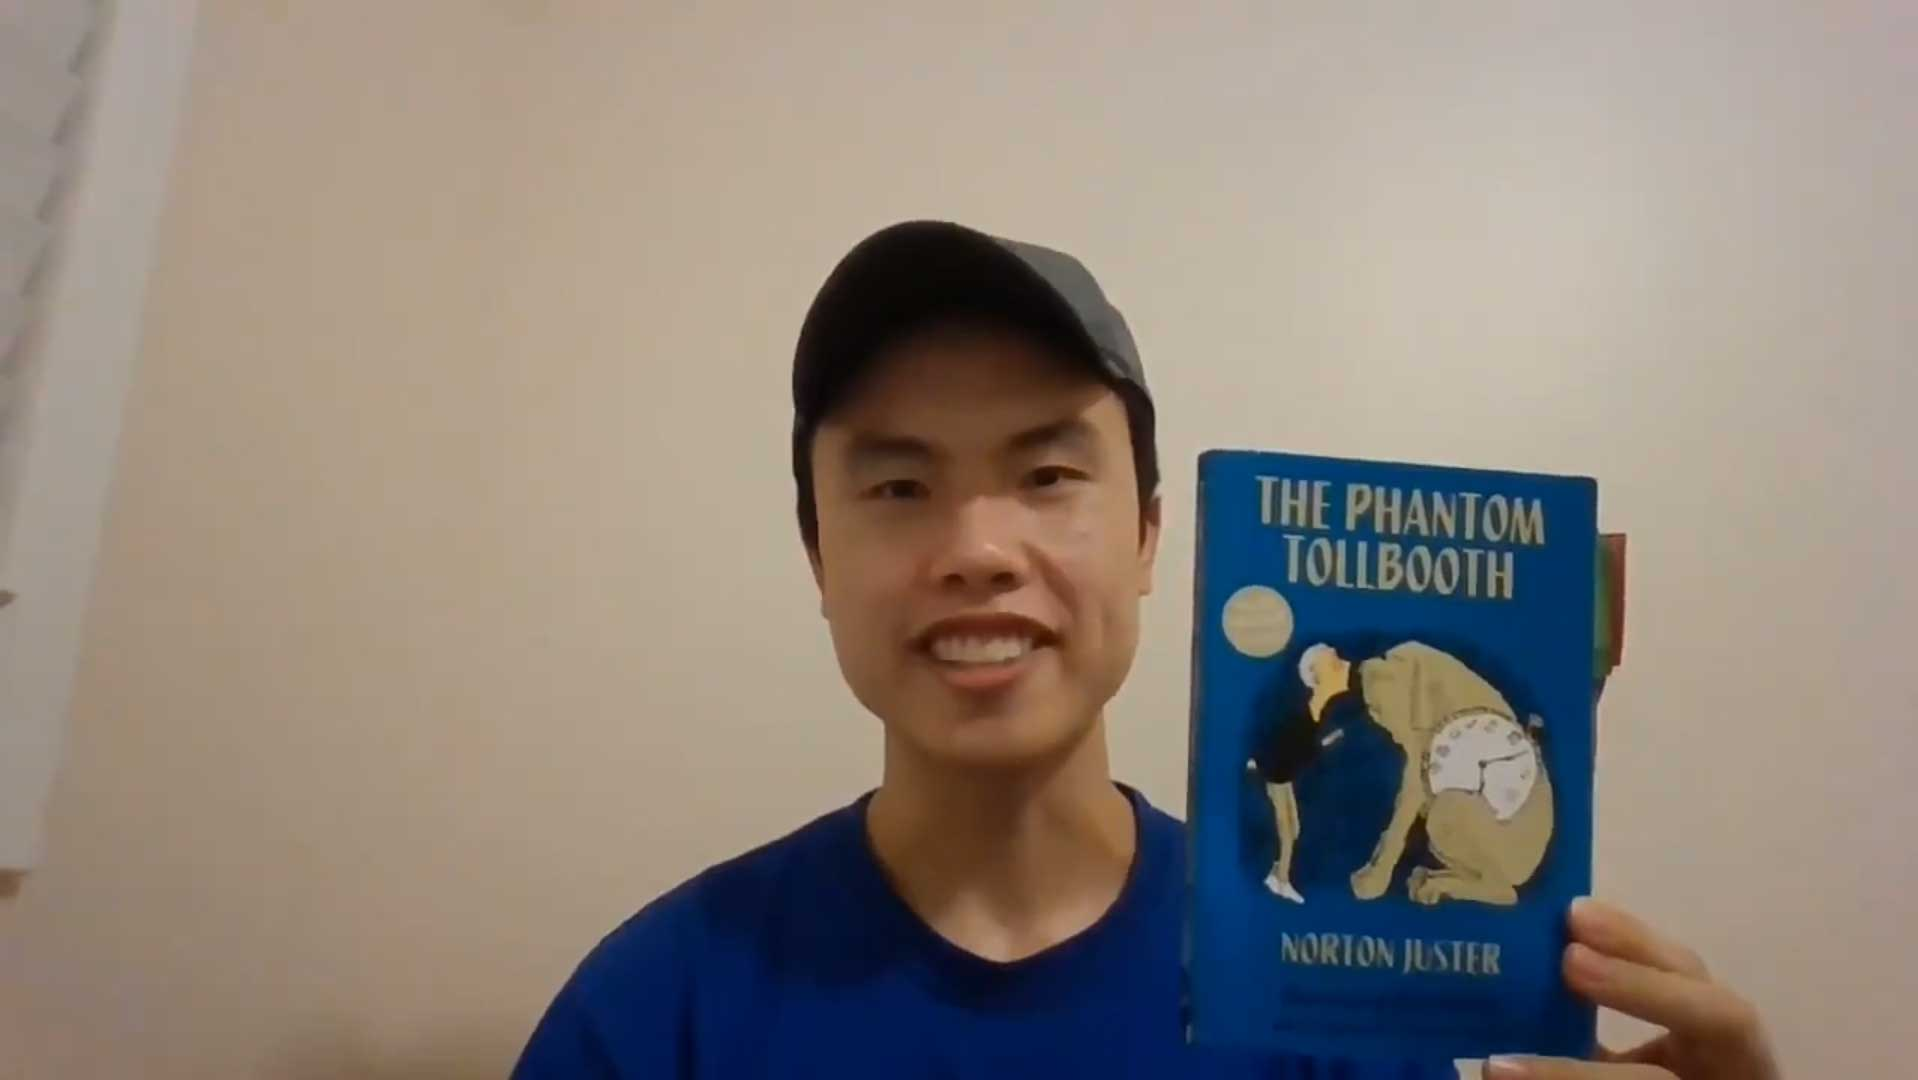 The Phantom Tollbooth video image